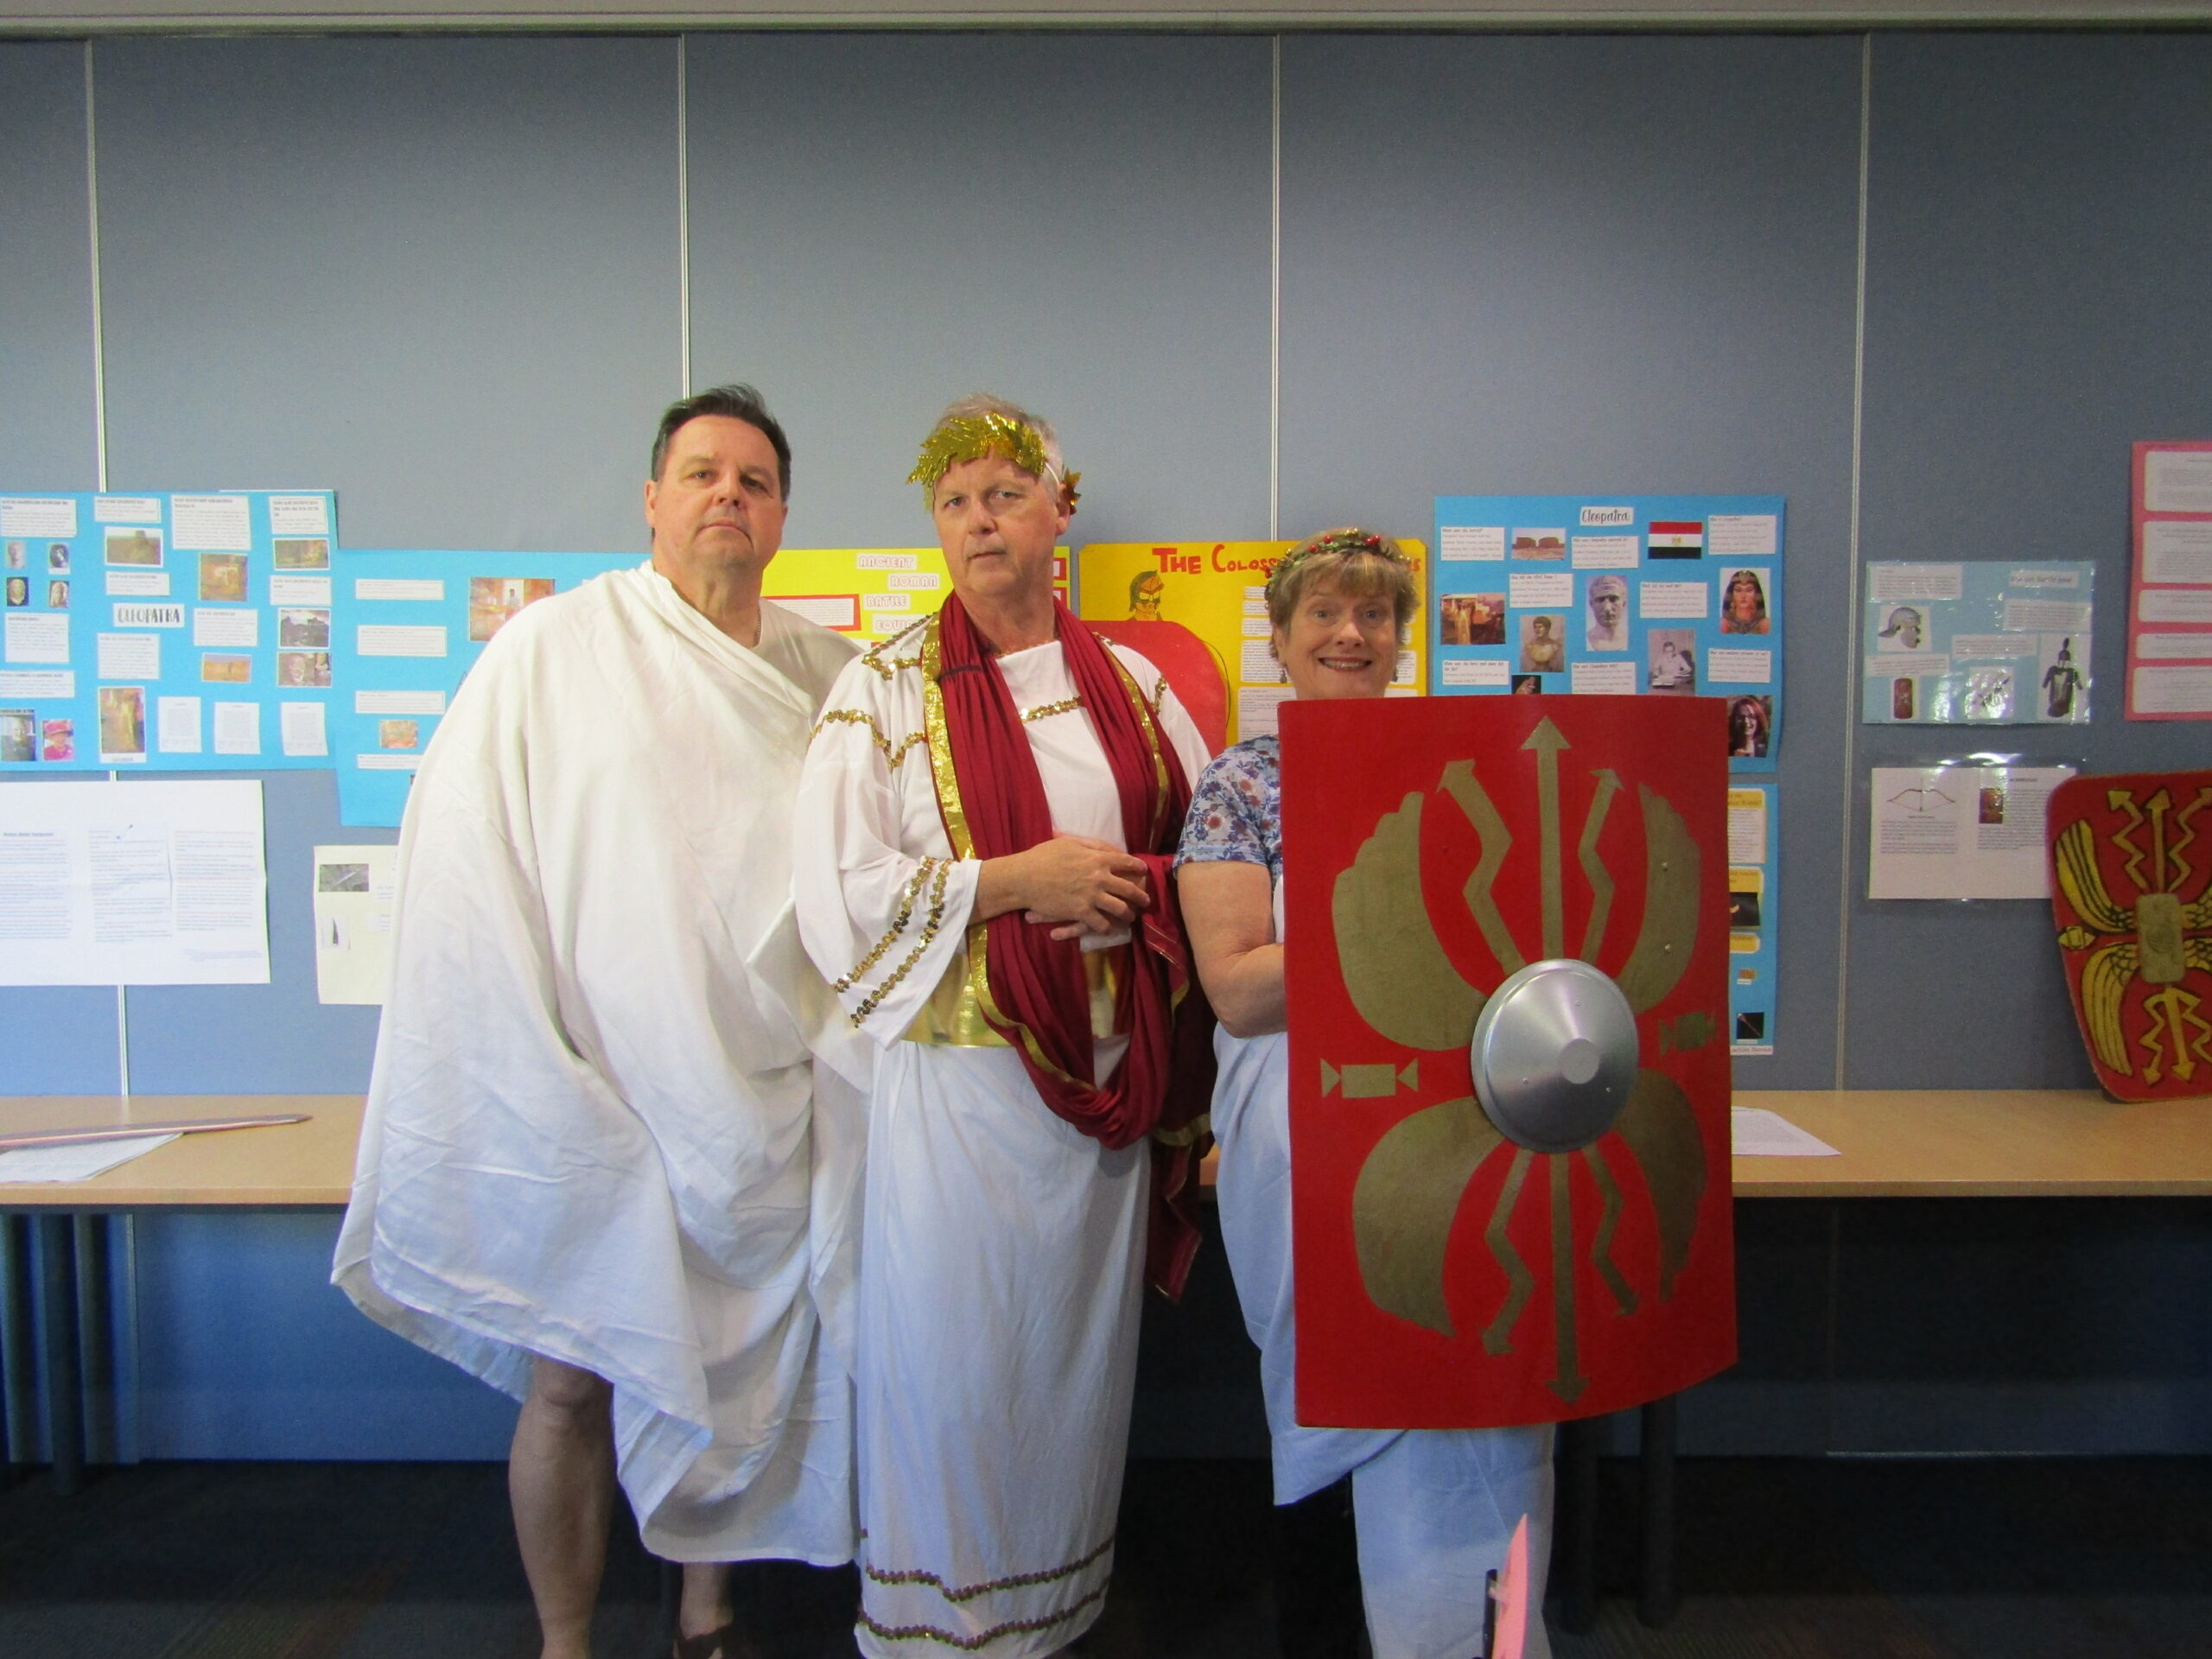 AWM Mark, Andrew and I in costume